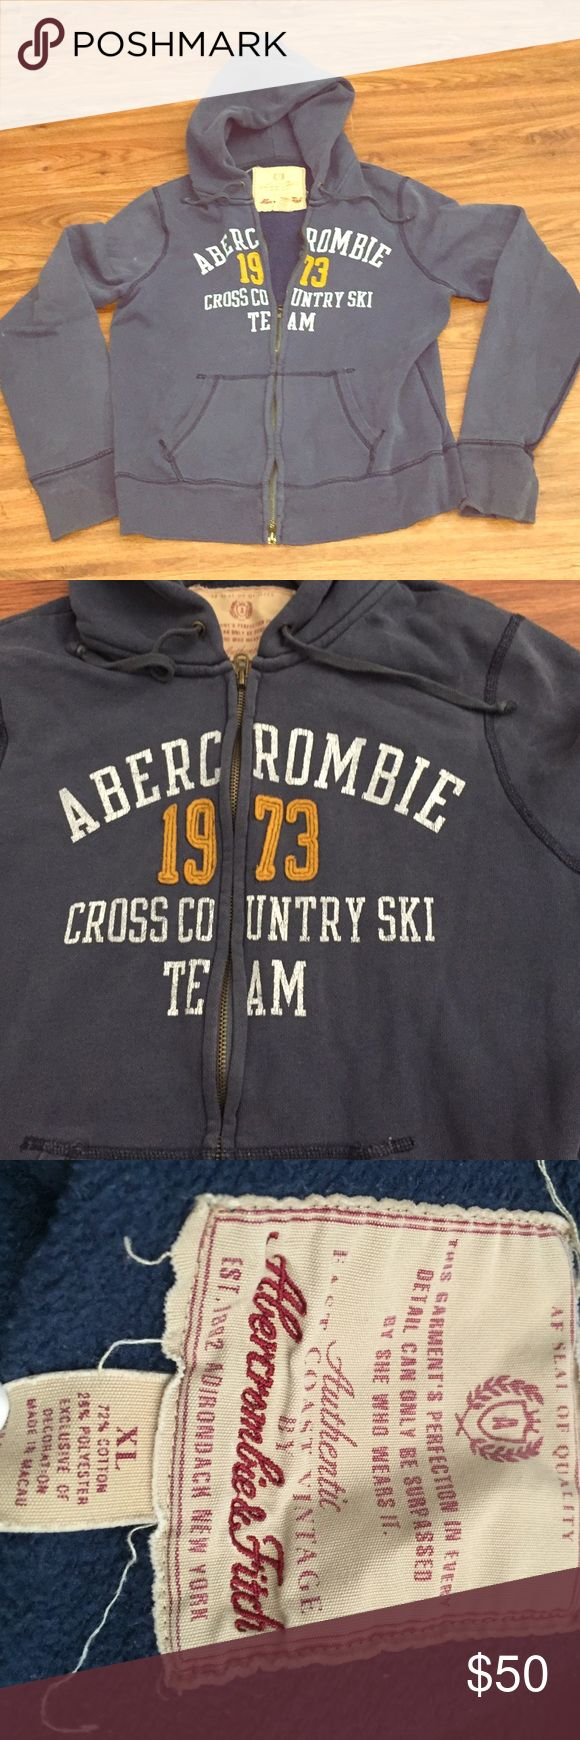 Abercrombie Fitch Authentic Vintage Hoodie Vintage Hoodies Hoodies Abercrombie